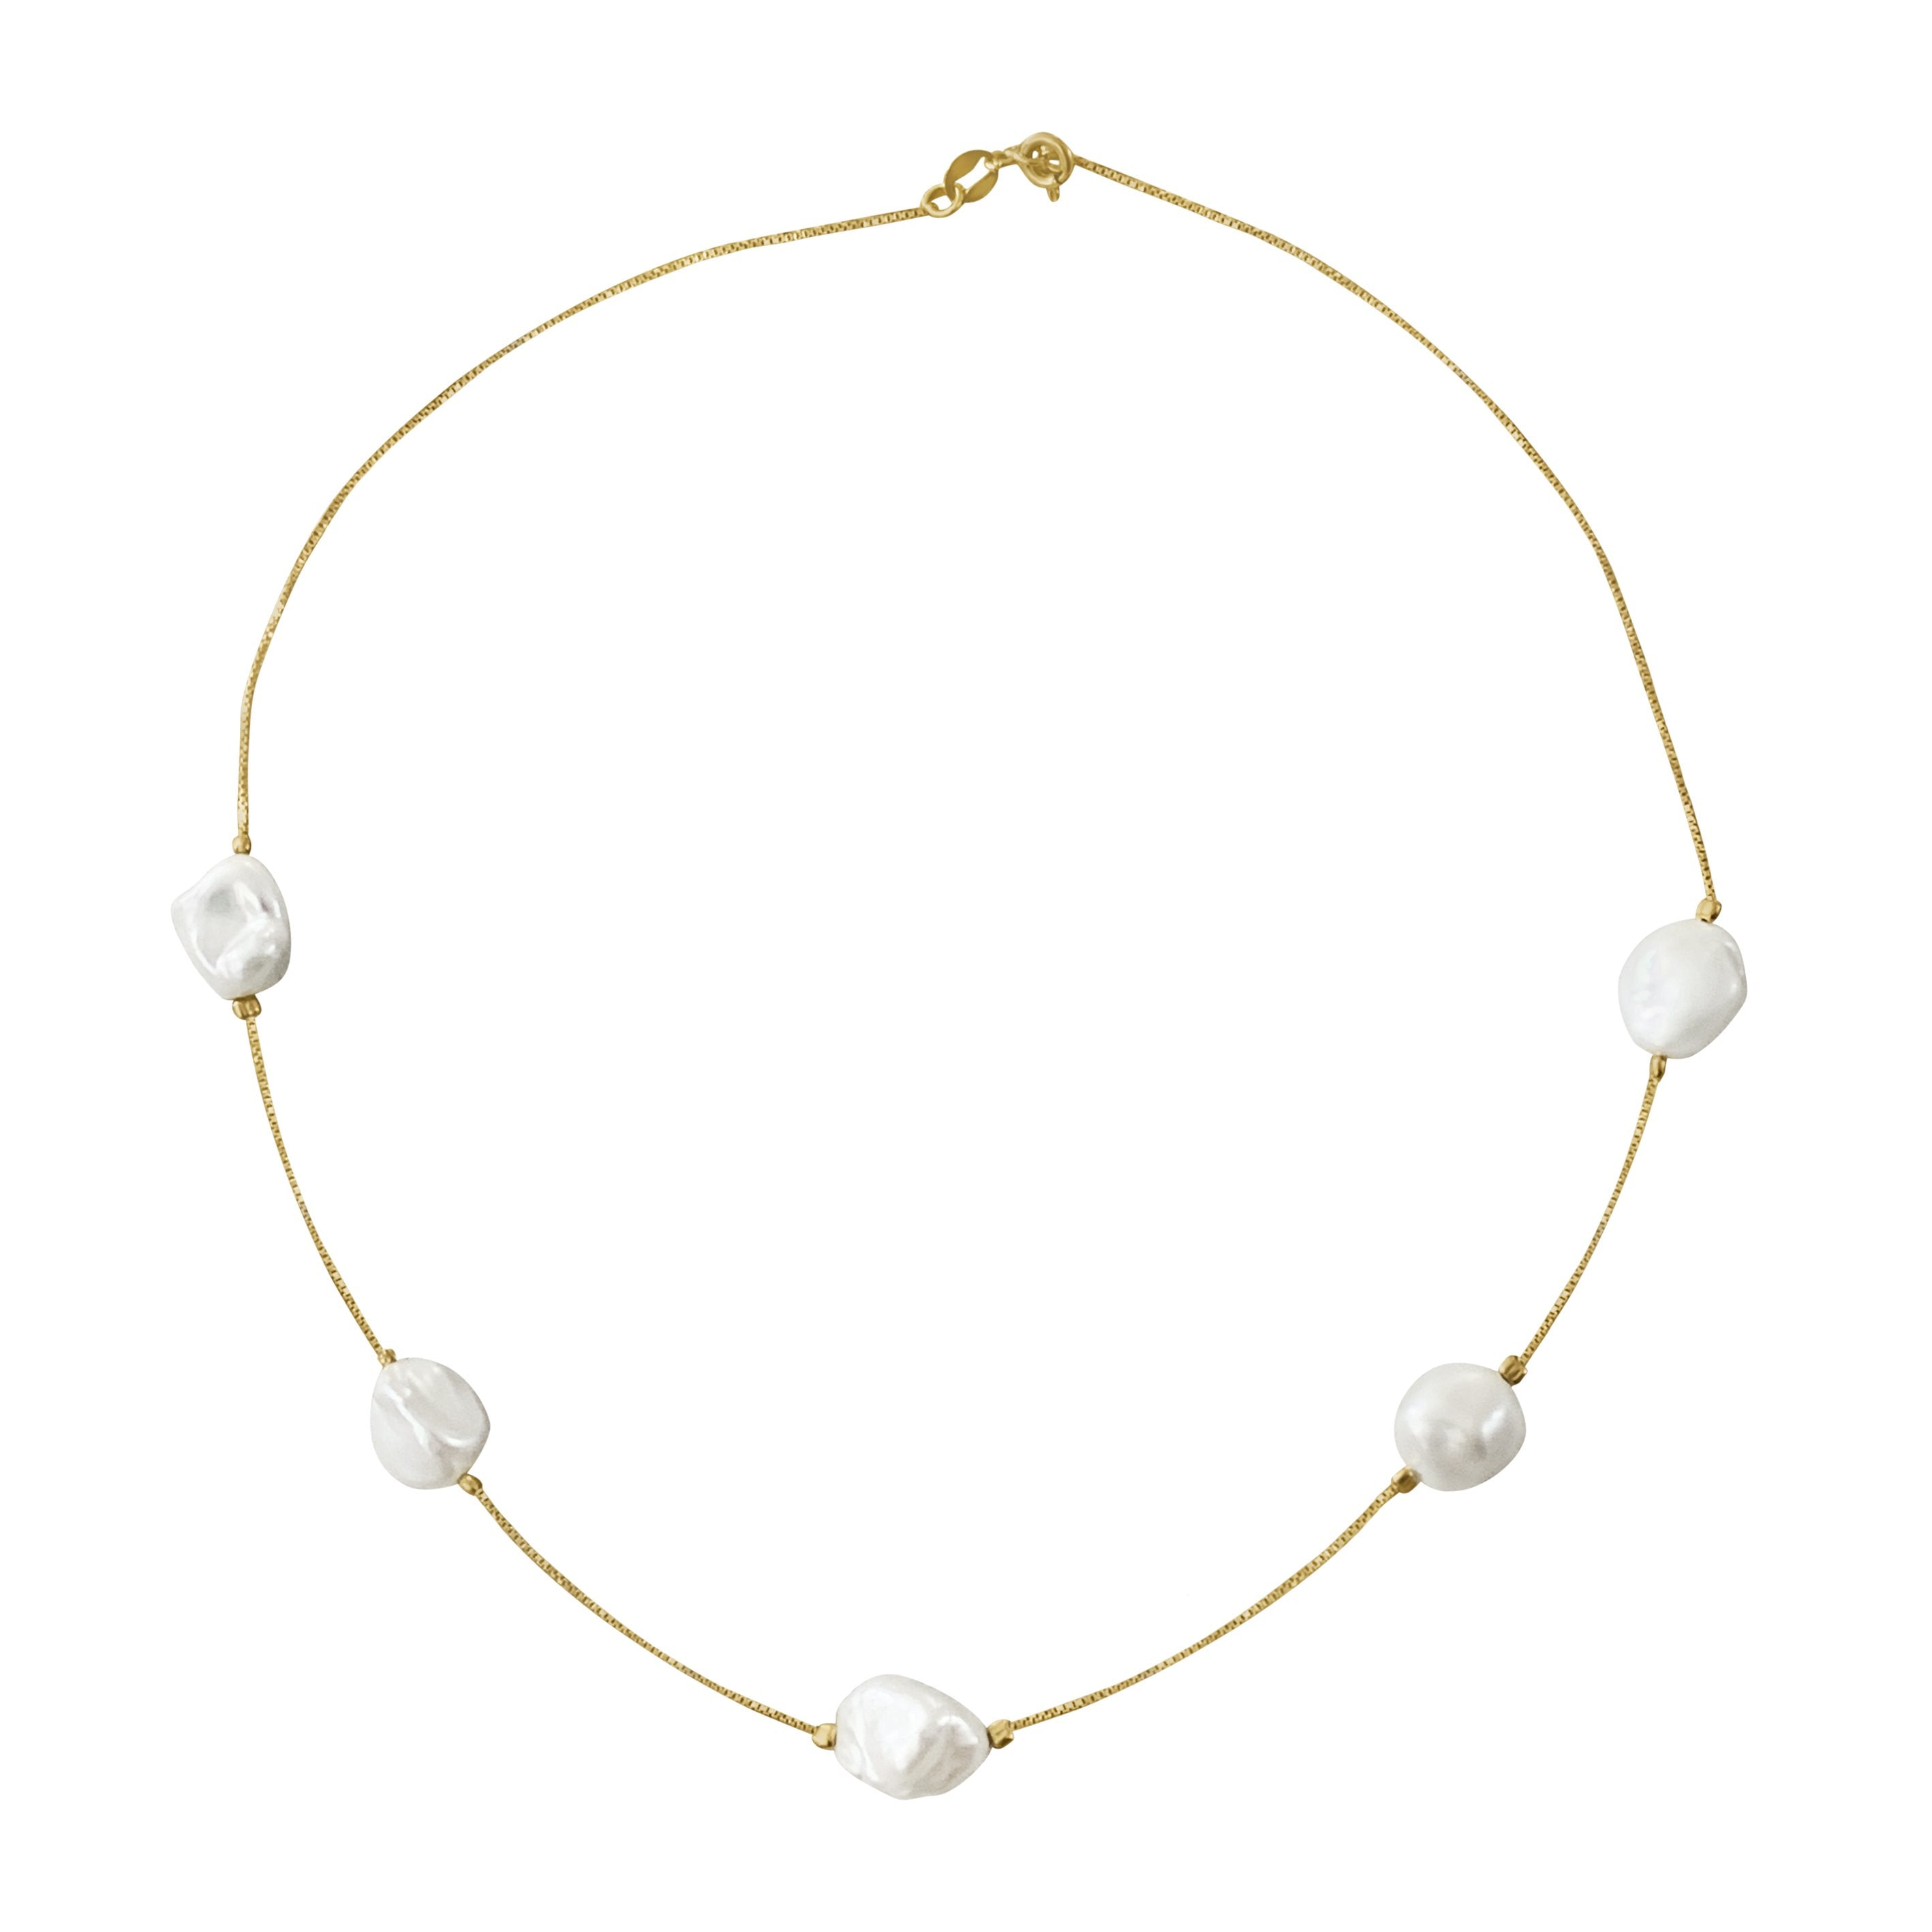 Sirens Pearls Gold Plated Necklace - natoorio